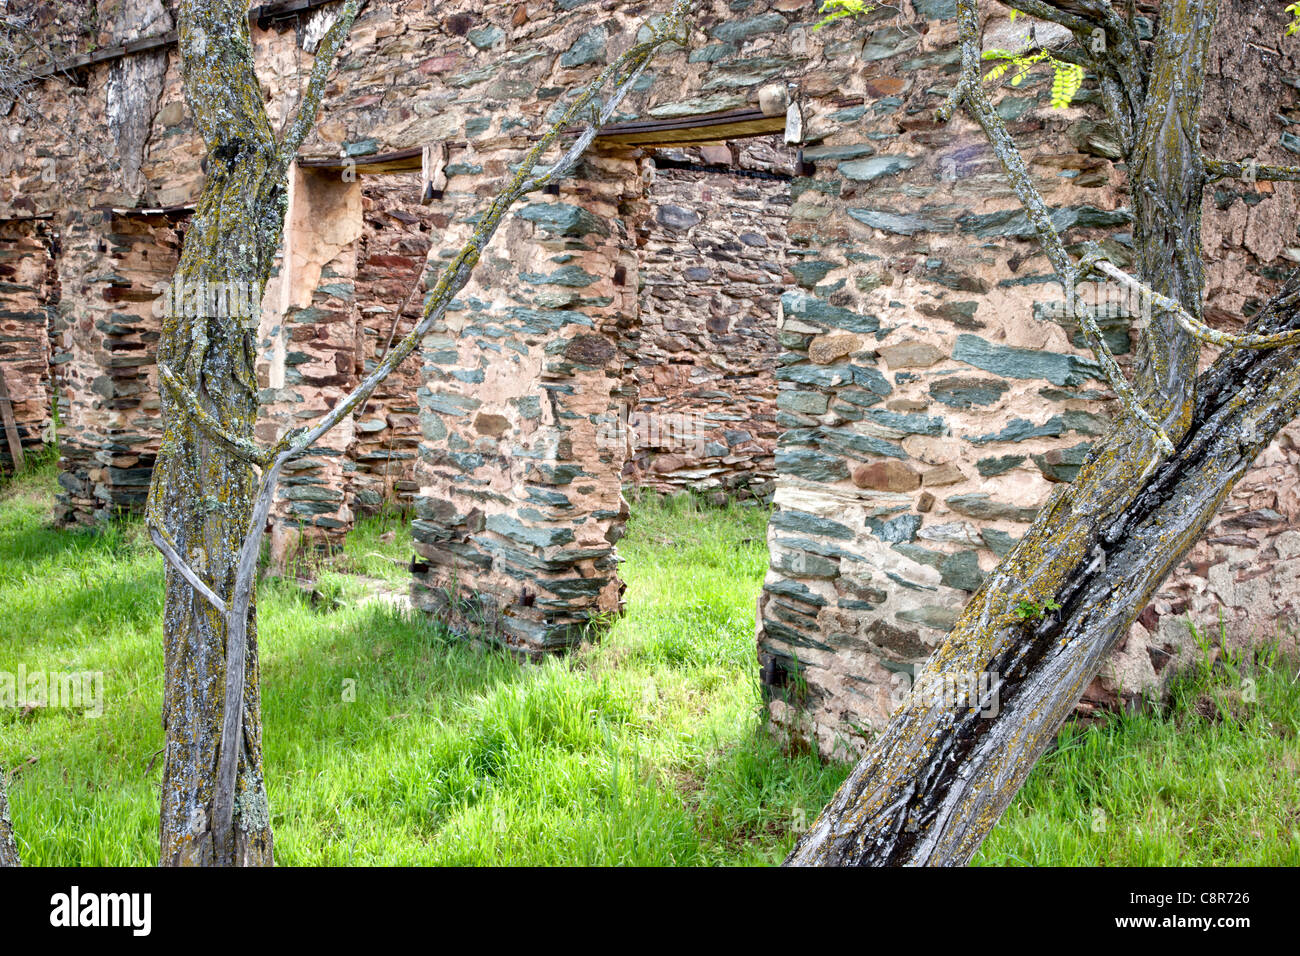 Ruins of the old Adams Express Office. - Stock Image